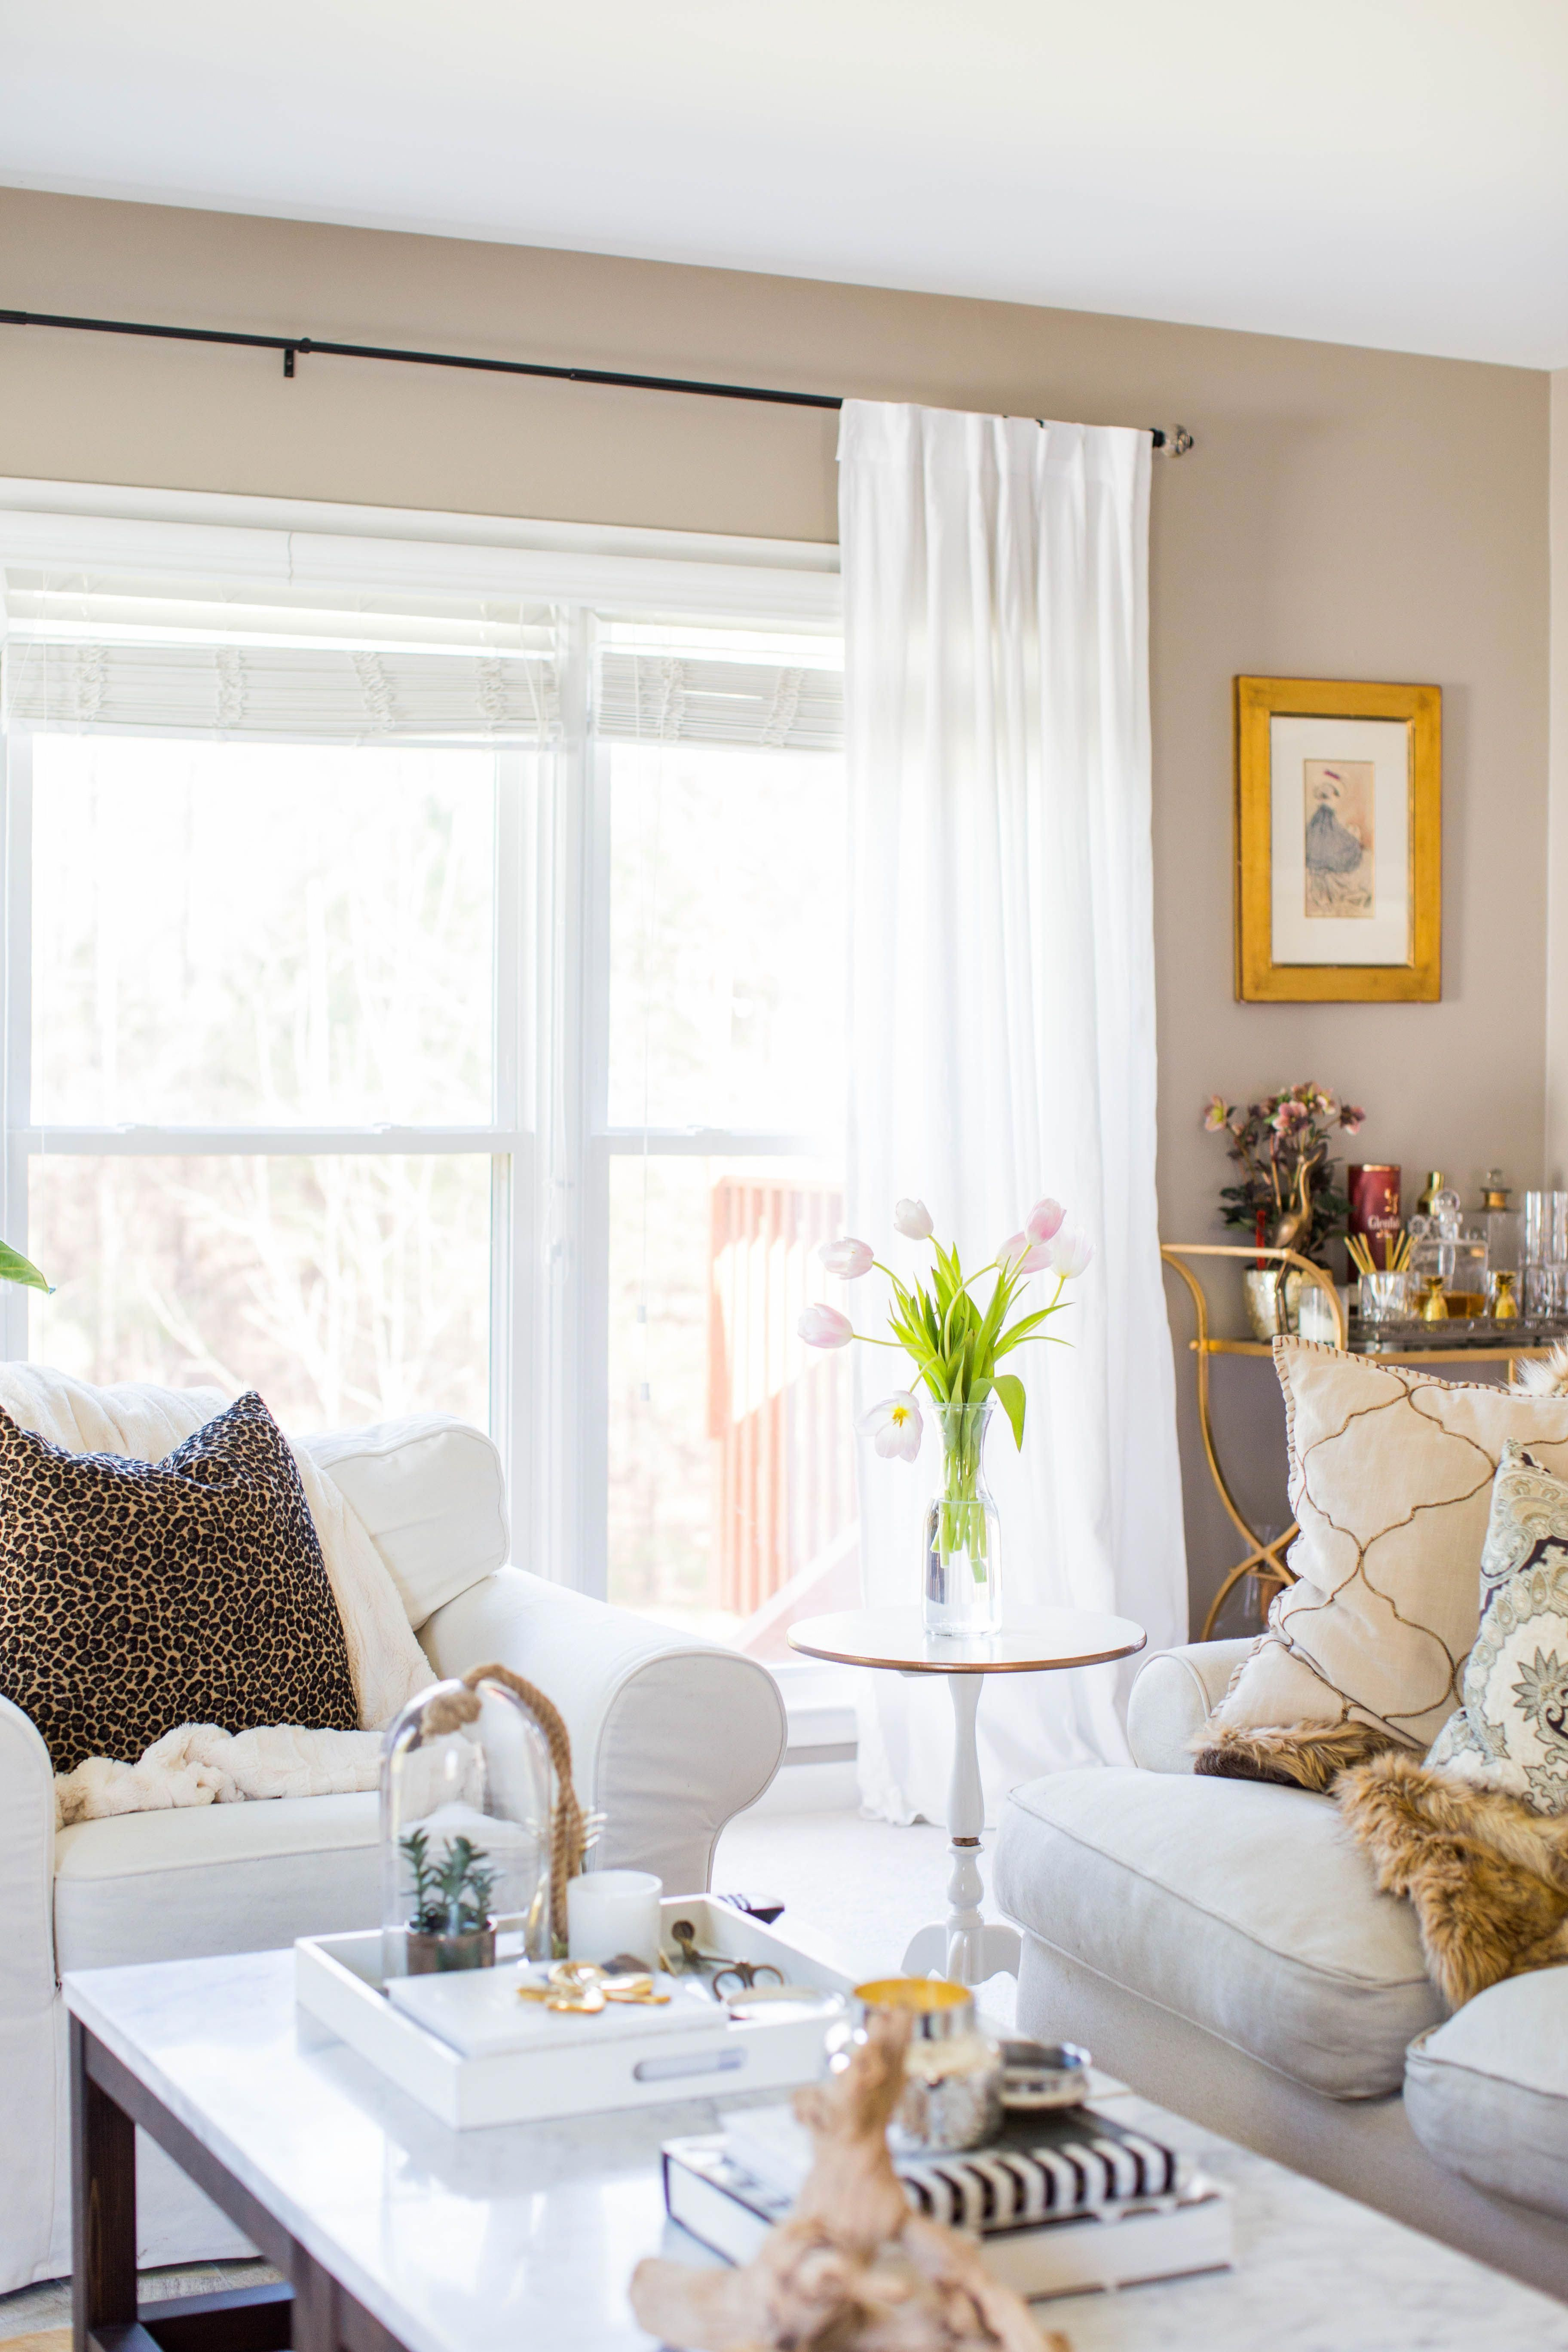 Barn window decor  living room home decor  books are such a great and inexpensive way